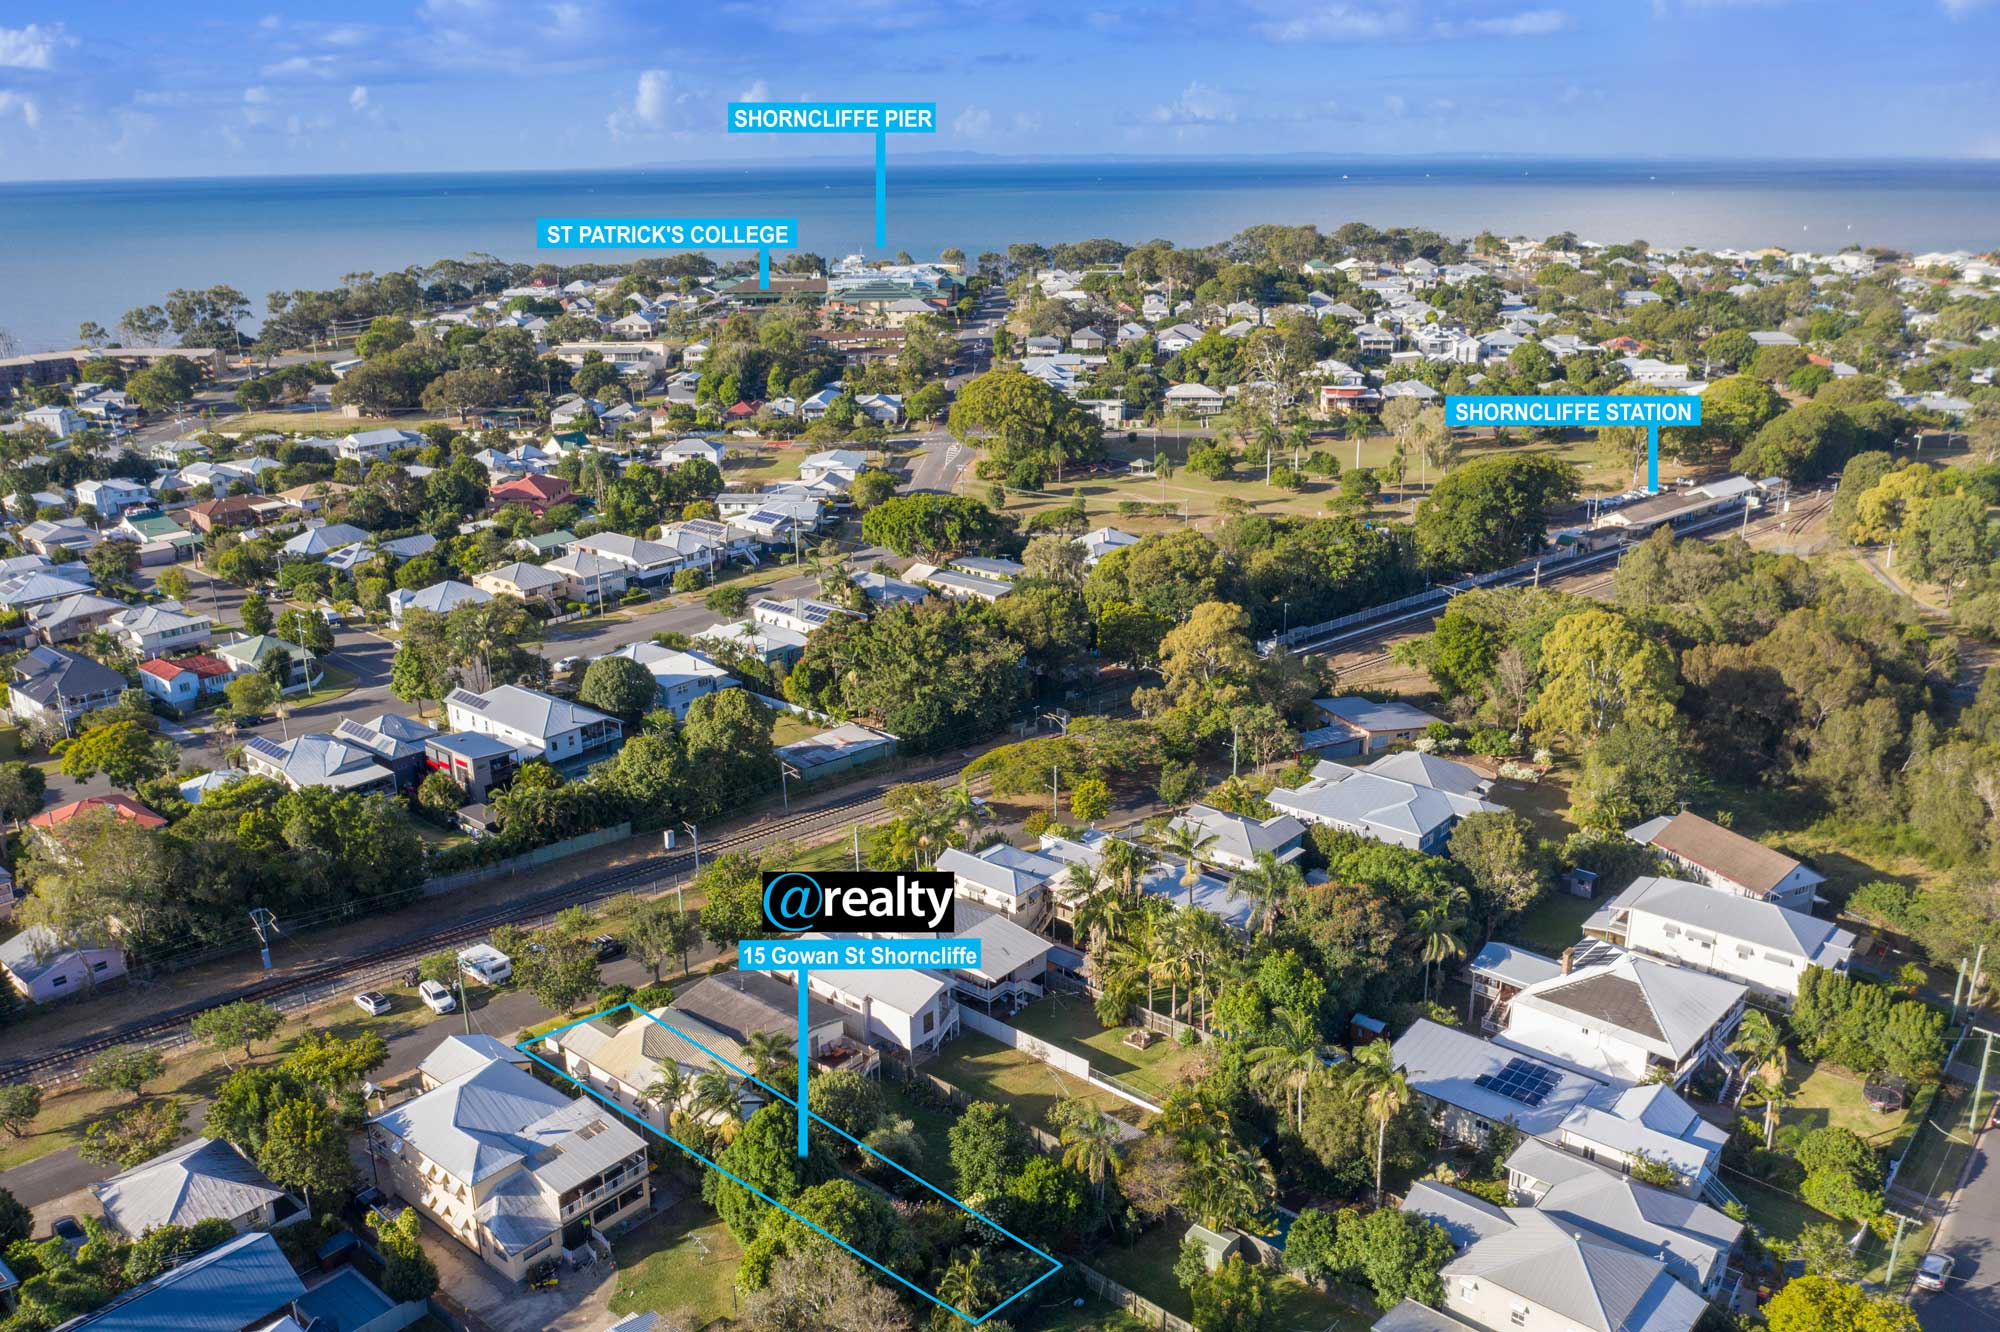 Drone photography location shots for 15 Gowen St Shorncliffe